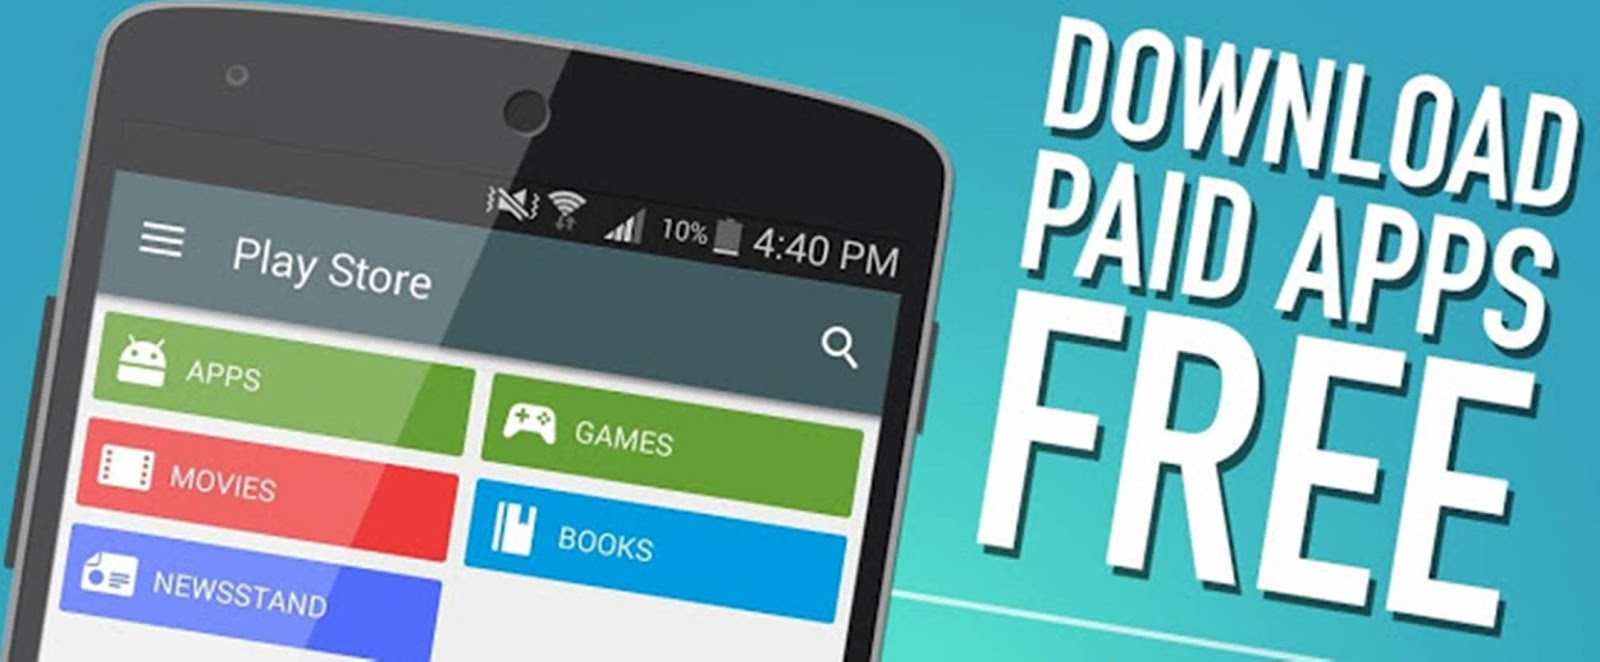 19 Temporarily Free Apps and 32 Discounted Apps